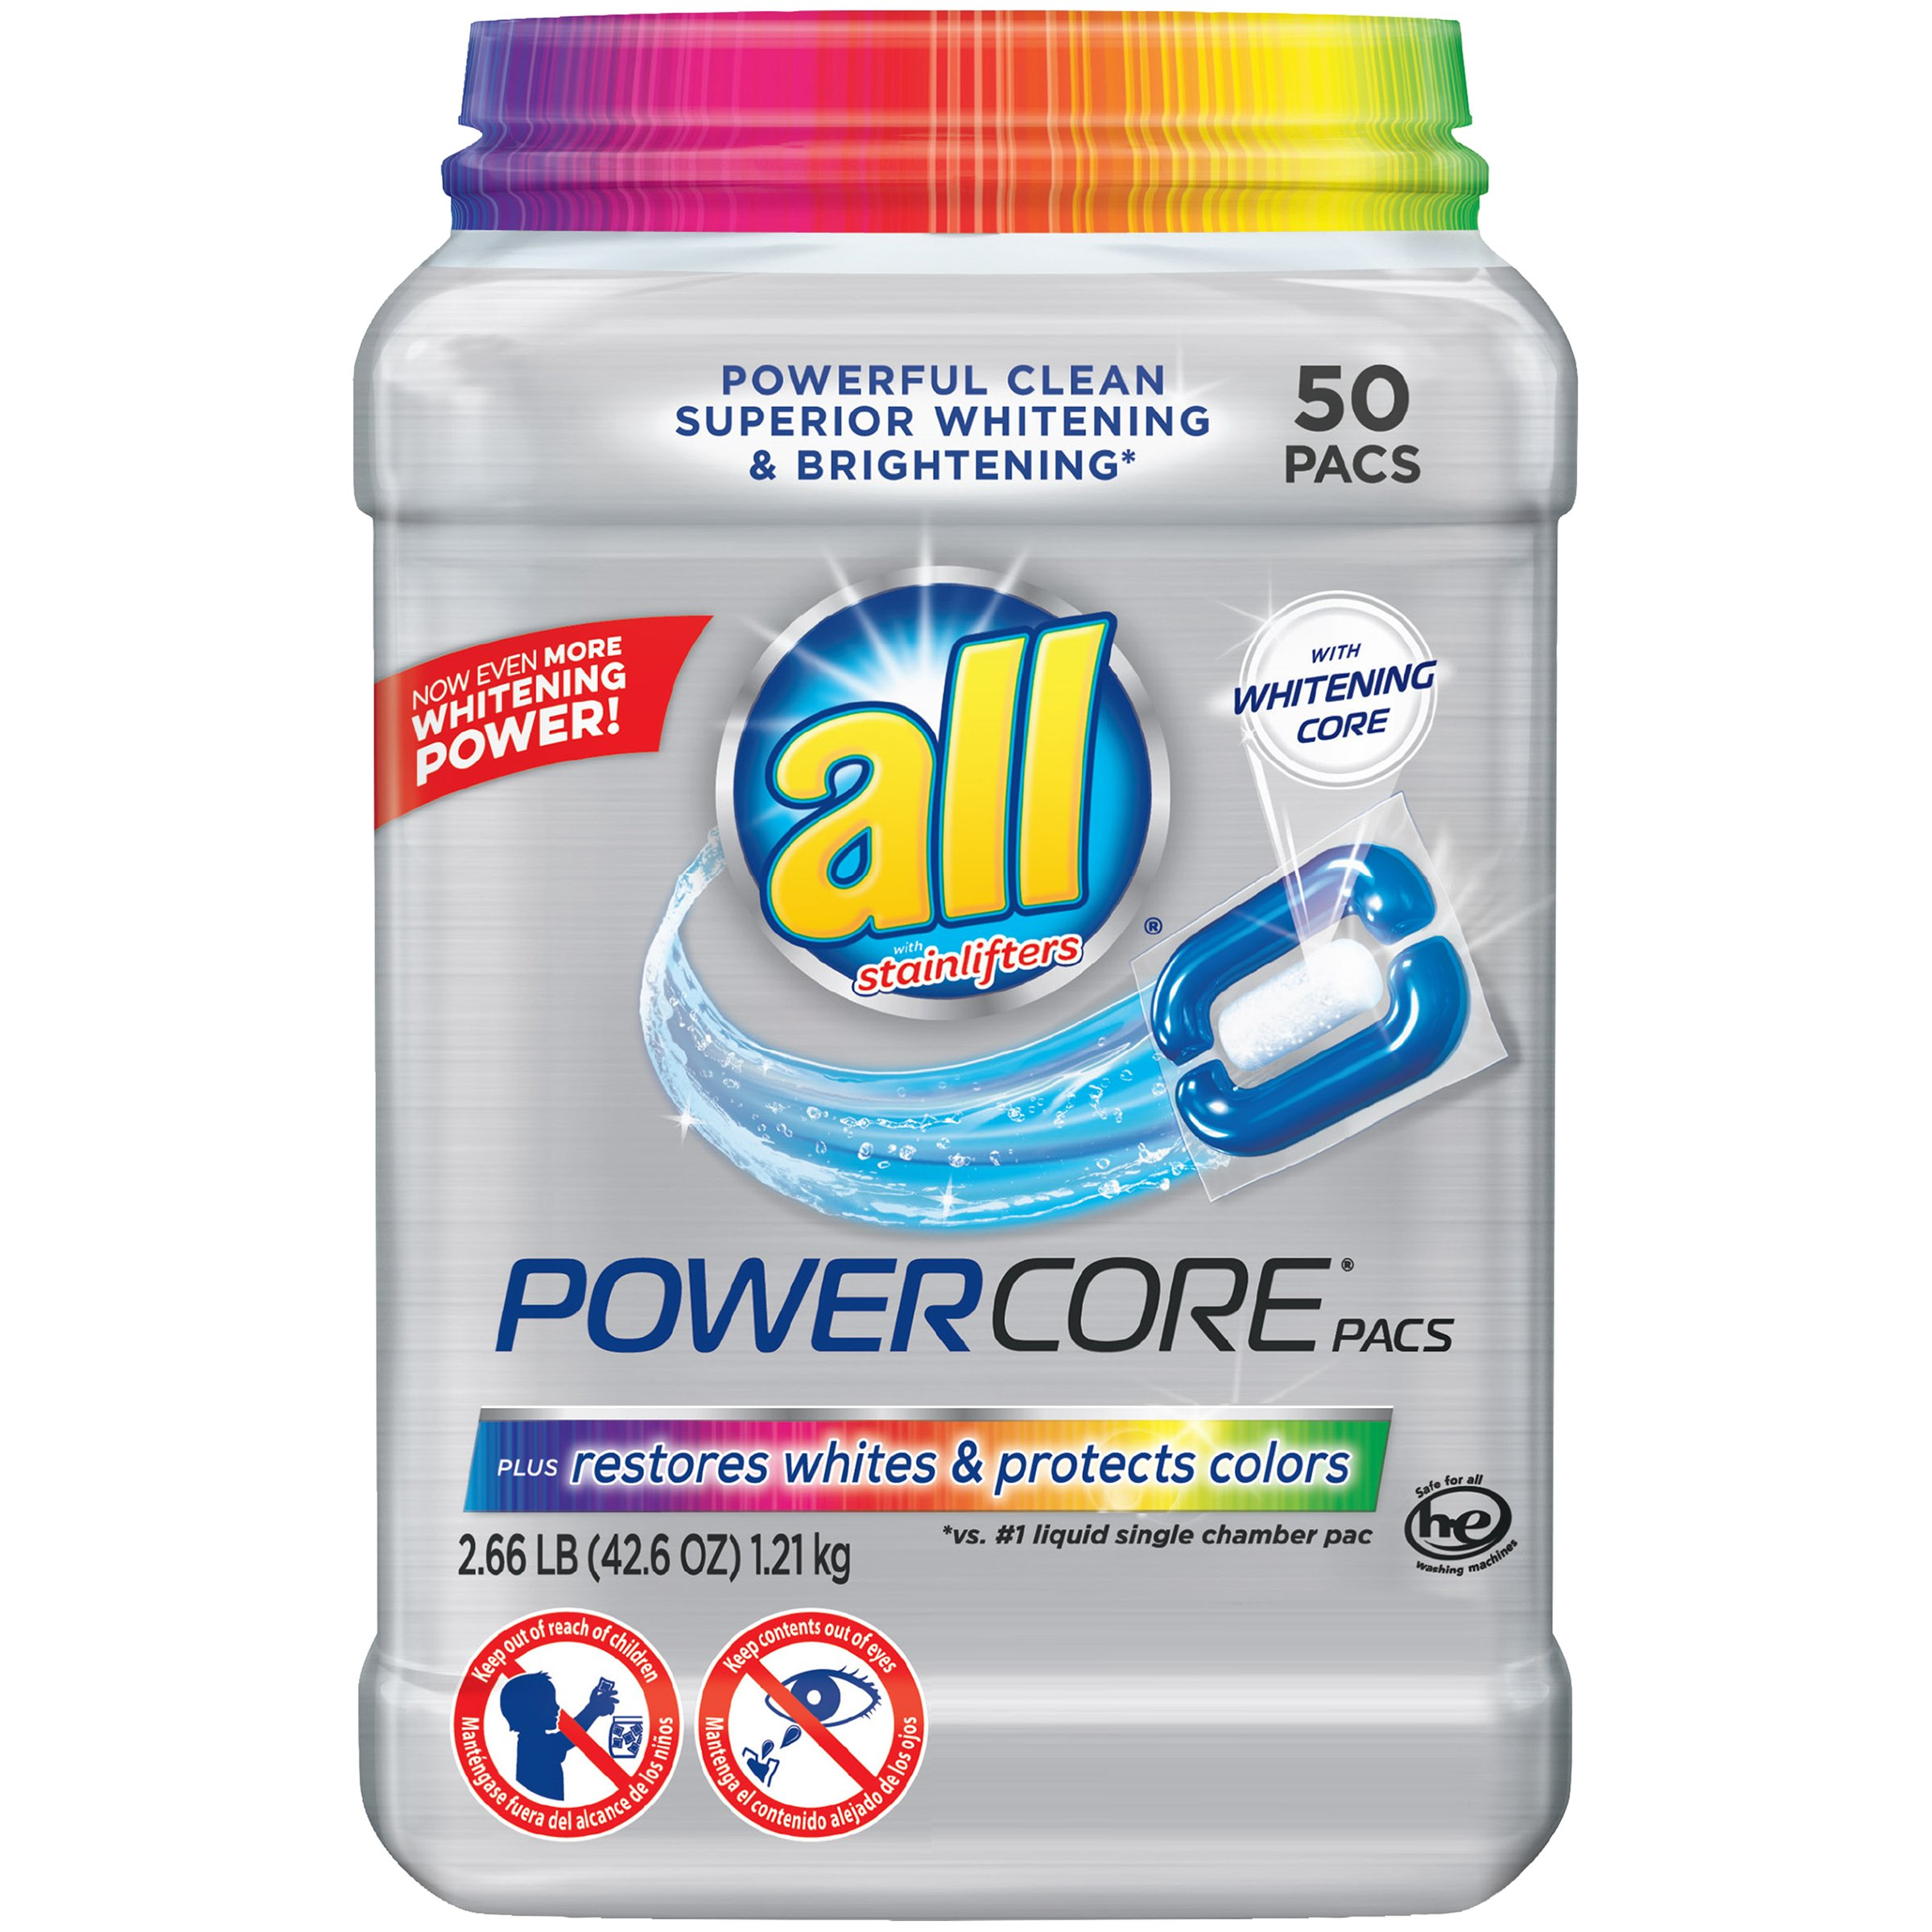 all Powercore Pacs Laundry Detergent Plus Restores Whites & Protects Colors, Tub, 50 Count